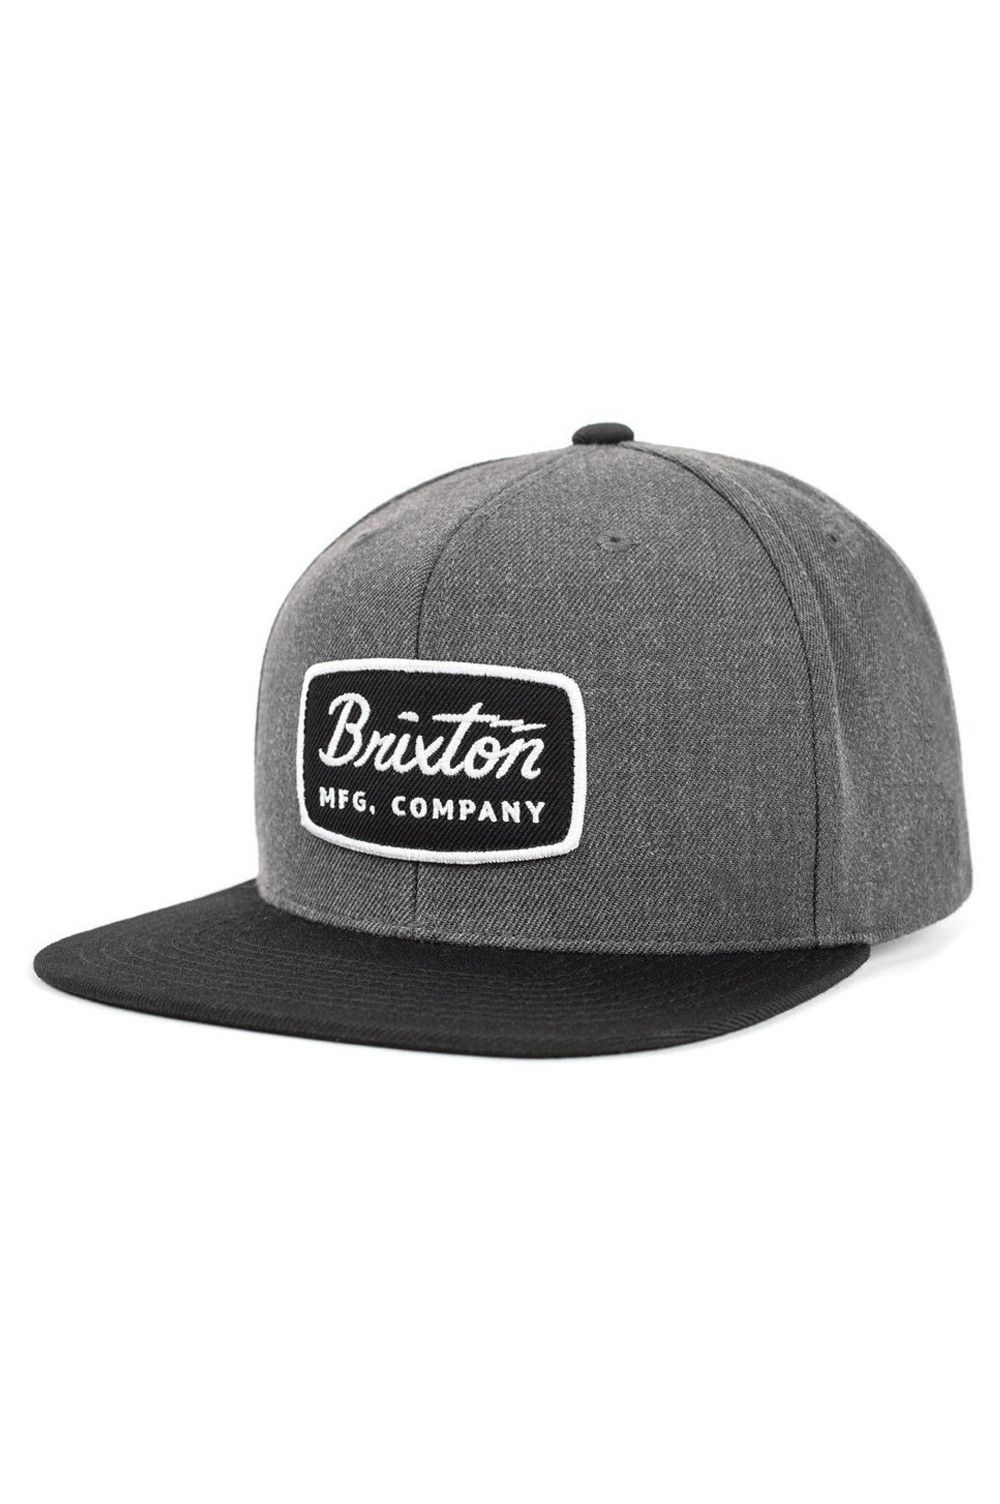 3b0bb18bef8  Brixton  snapback  Hat - The Jolt from Brixton is a six-panel cut and sew  acrylic wool cap with a custom embroidered patch at front and adjustable  snaps at ...